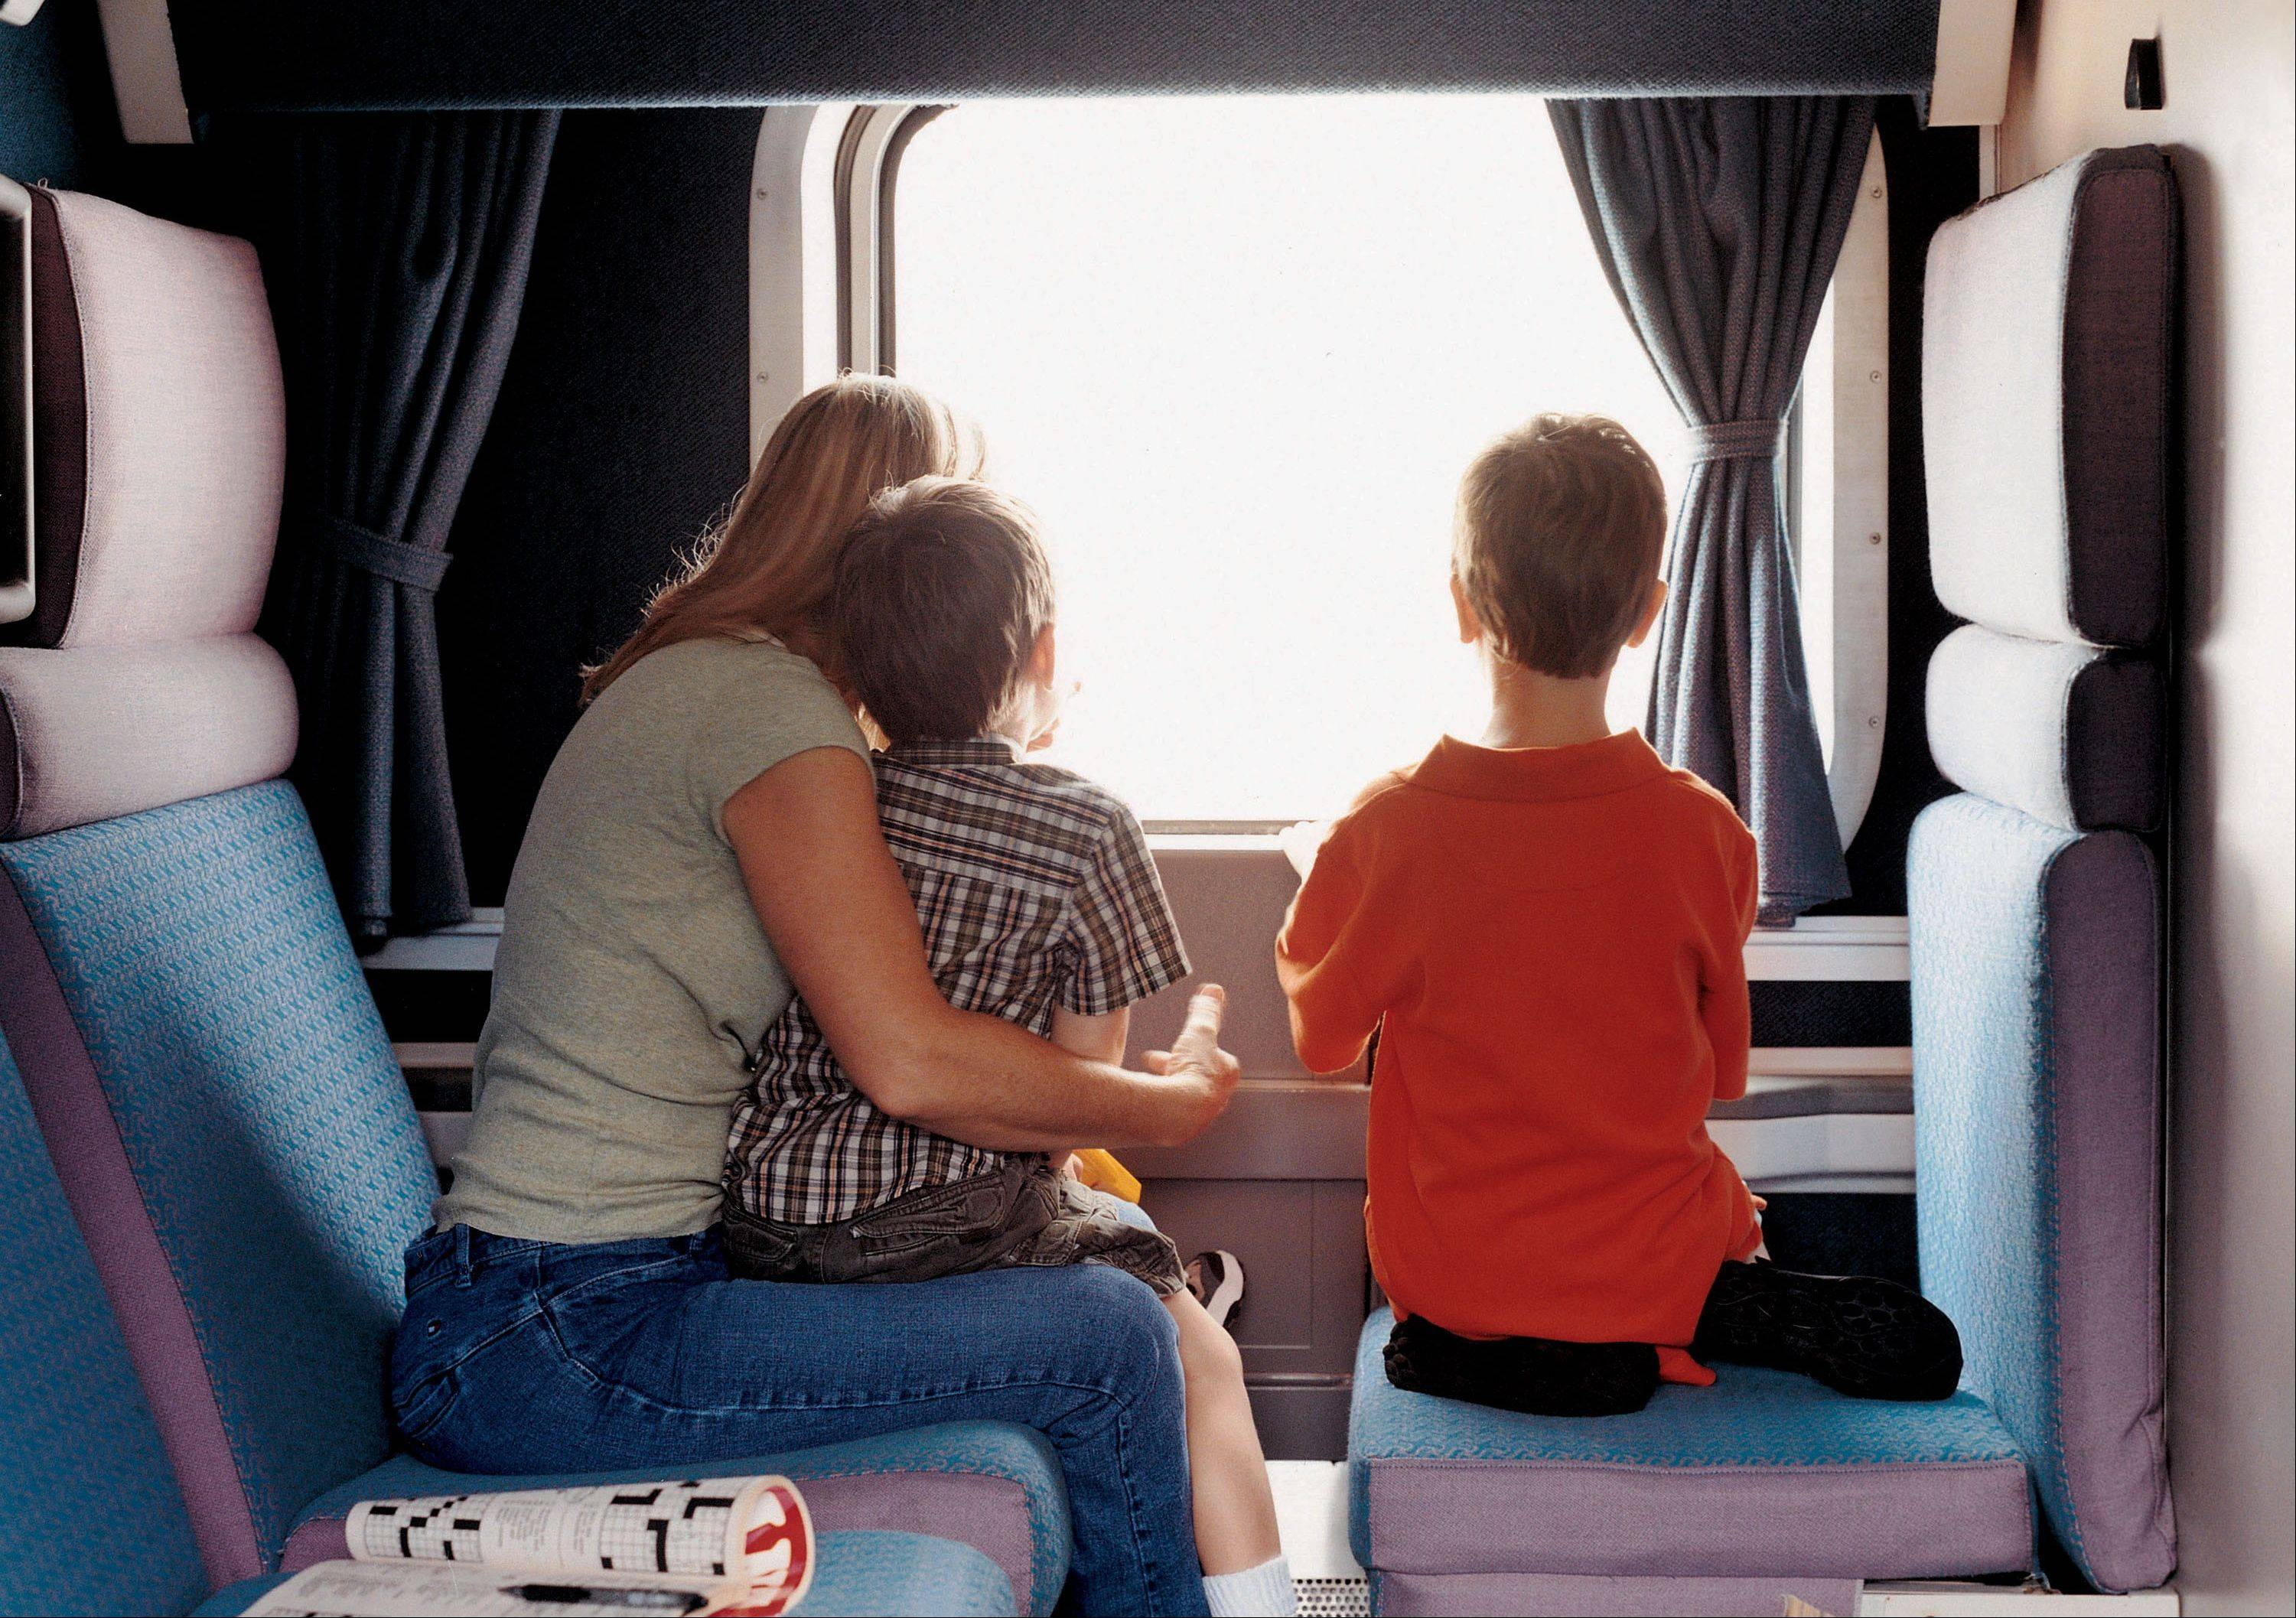 Passengers look out the window on the California Zephyr.